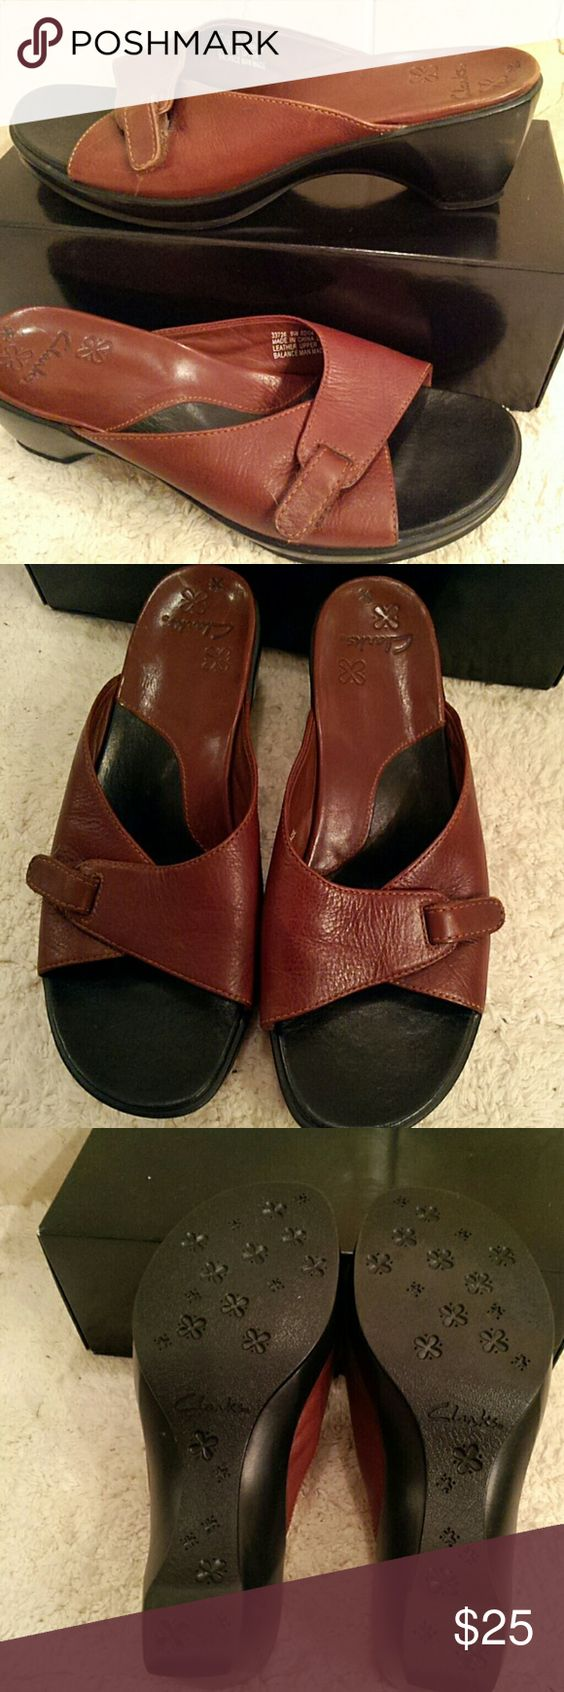 "Clarks soft brown leather sandals soft leather in a dark brown color; low heel 2.25""; front panel has velcro for slight adjustment of width; Clarks brand; size 8W  (T-11) Clarks Shoes Sandals"